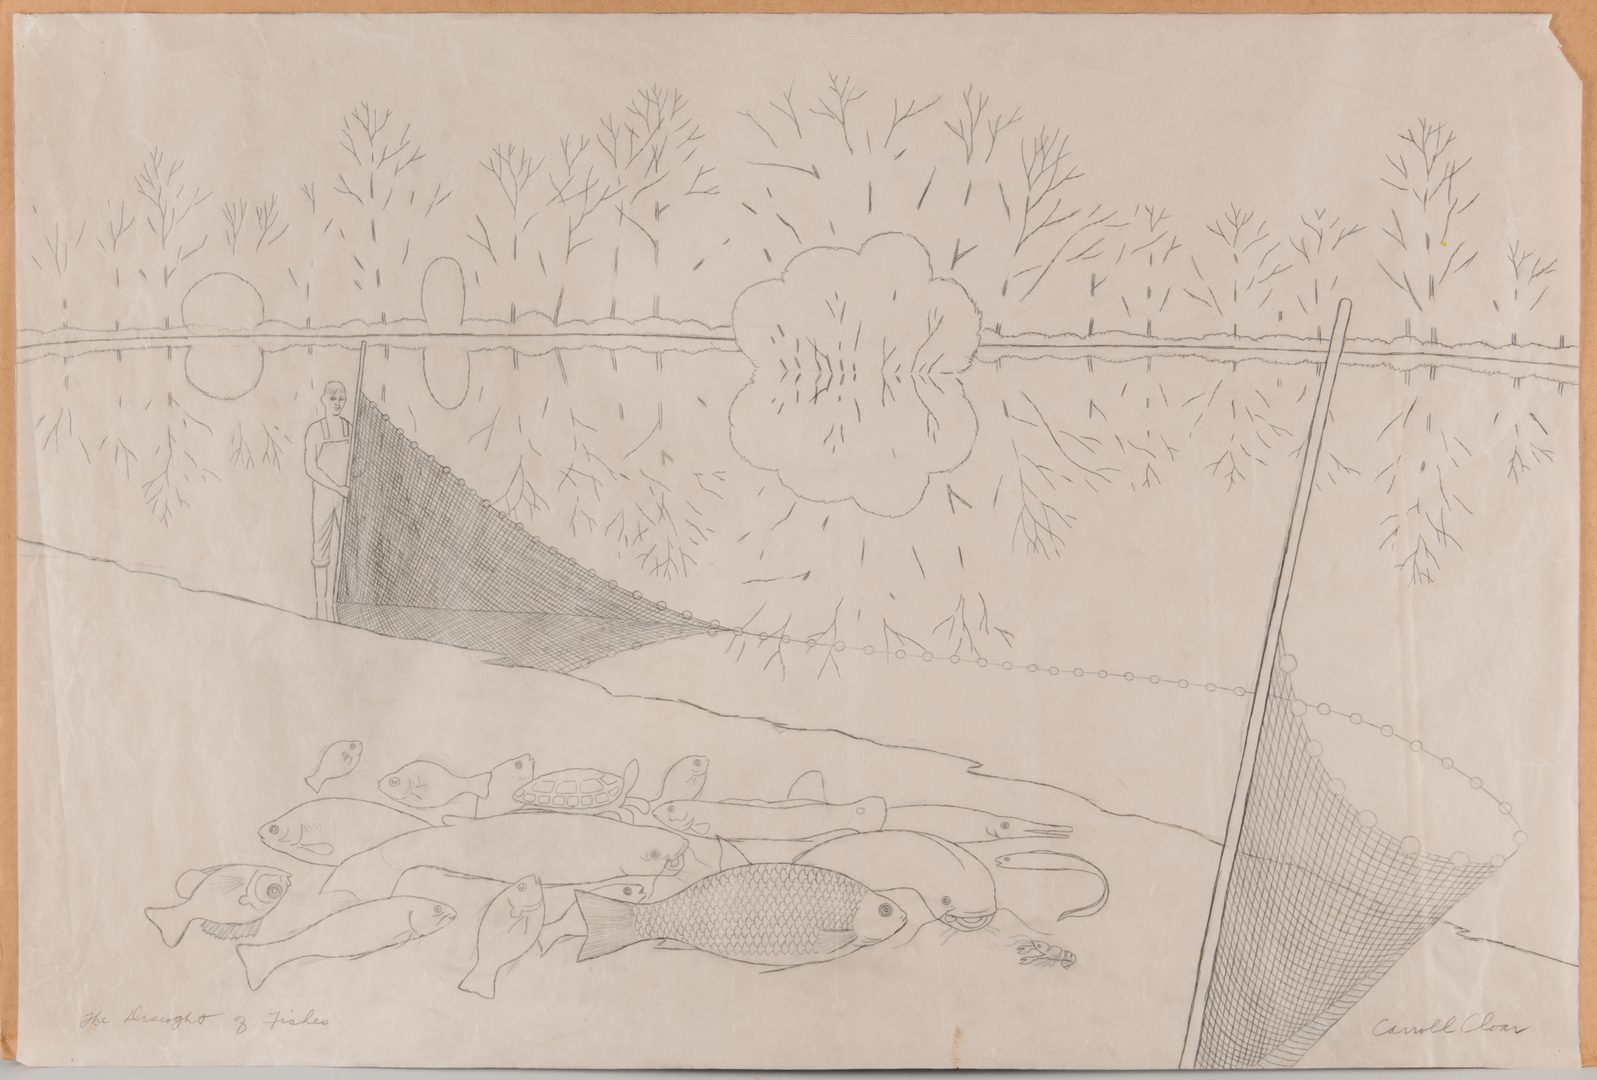 Lot 182: Carroll Cloar drawing, Draught of Fishes